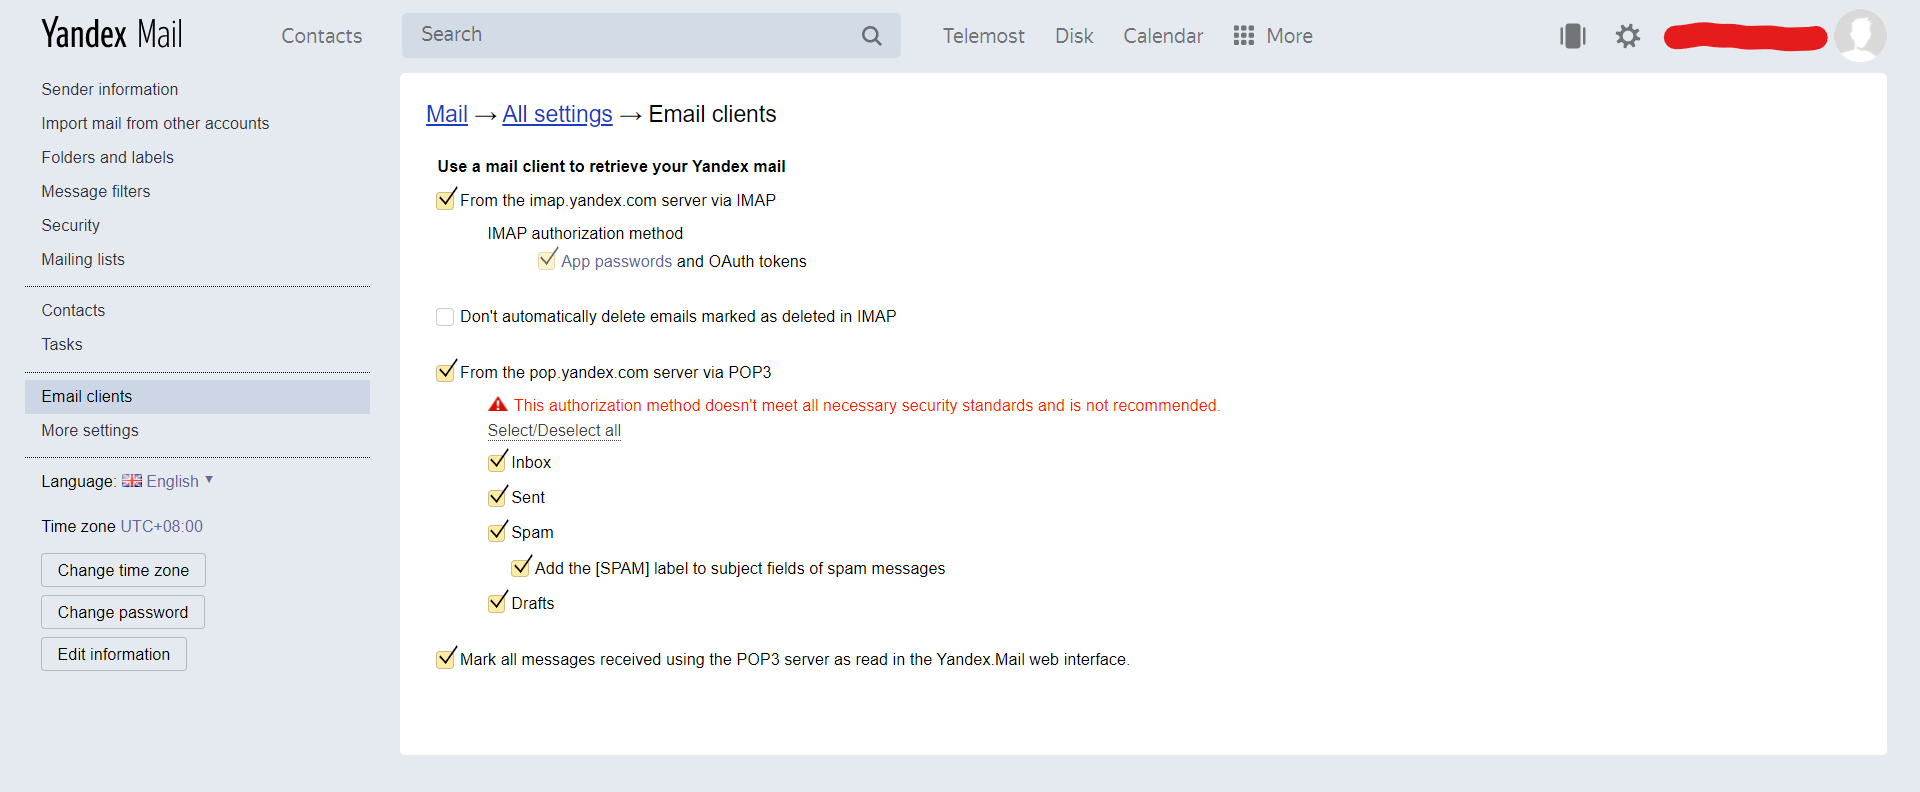 Yandex-Email-Client-Settings.png